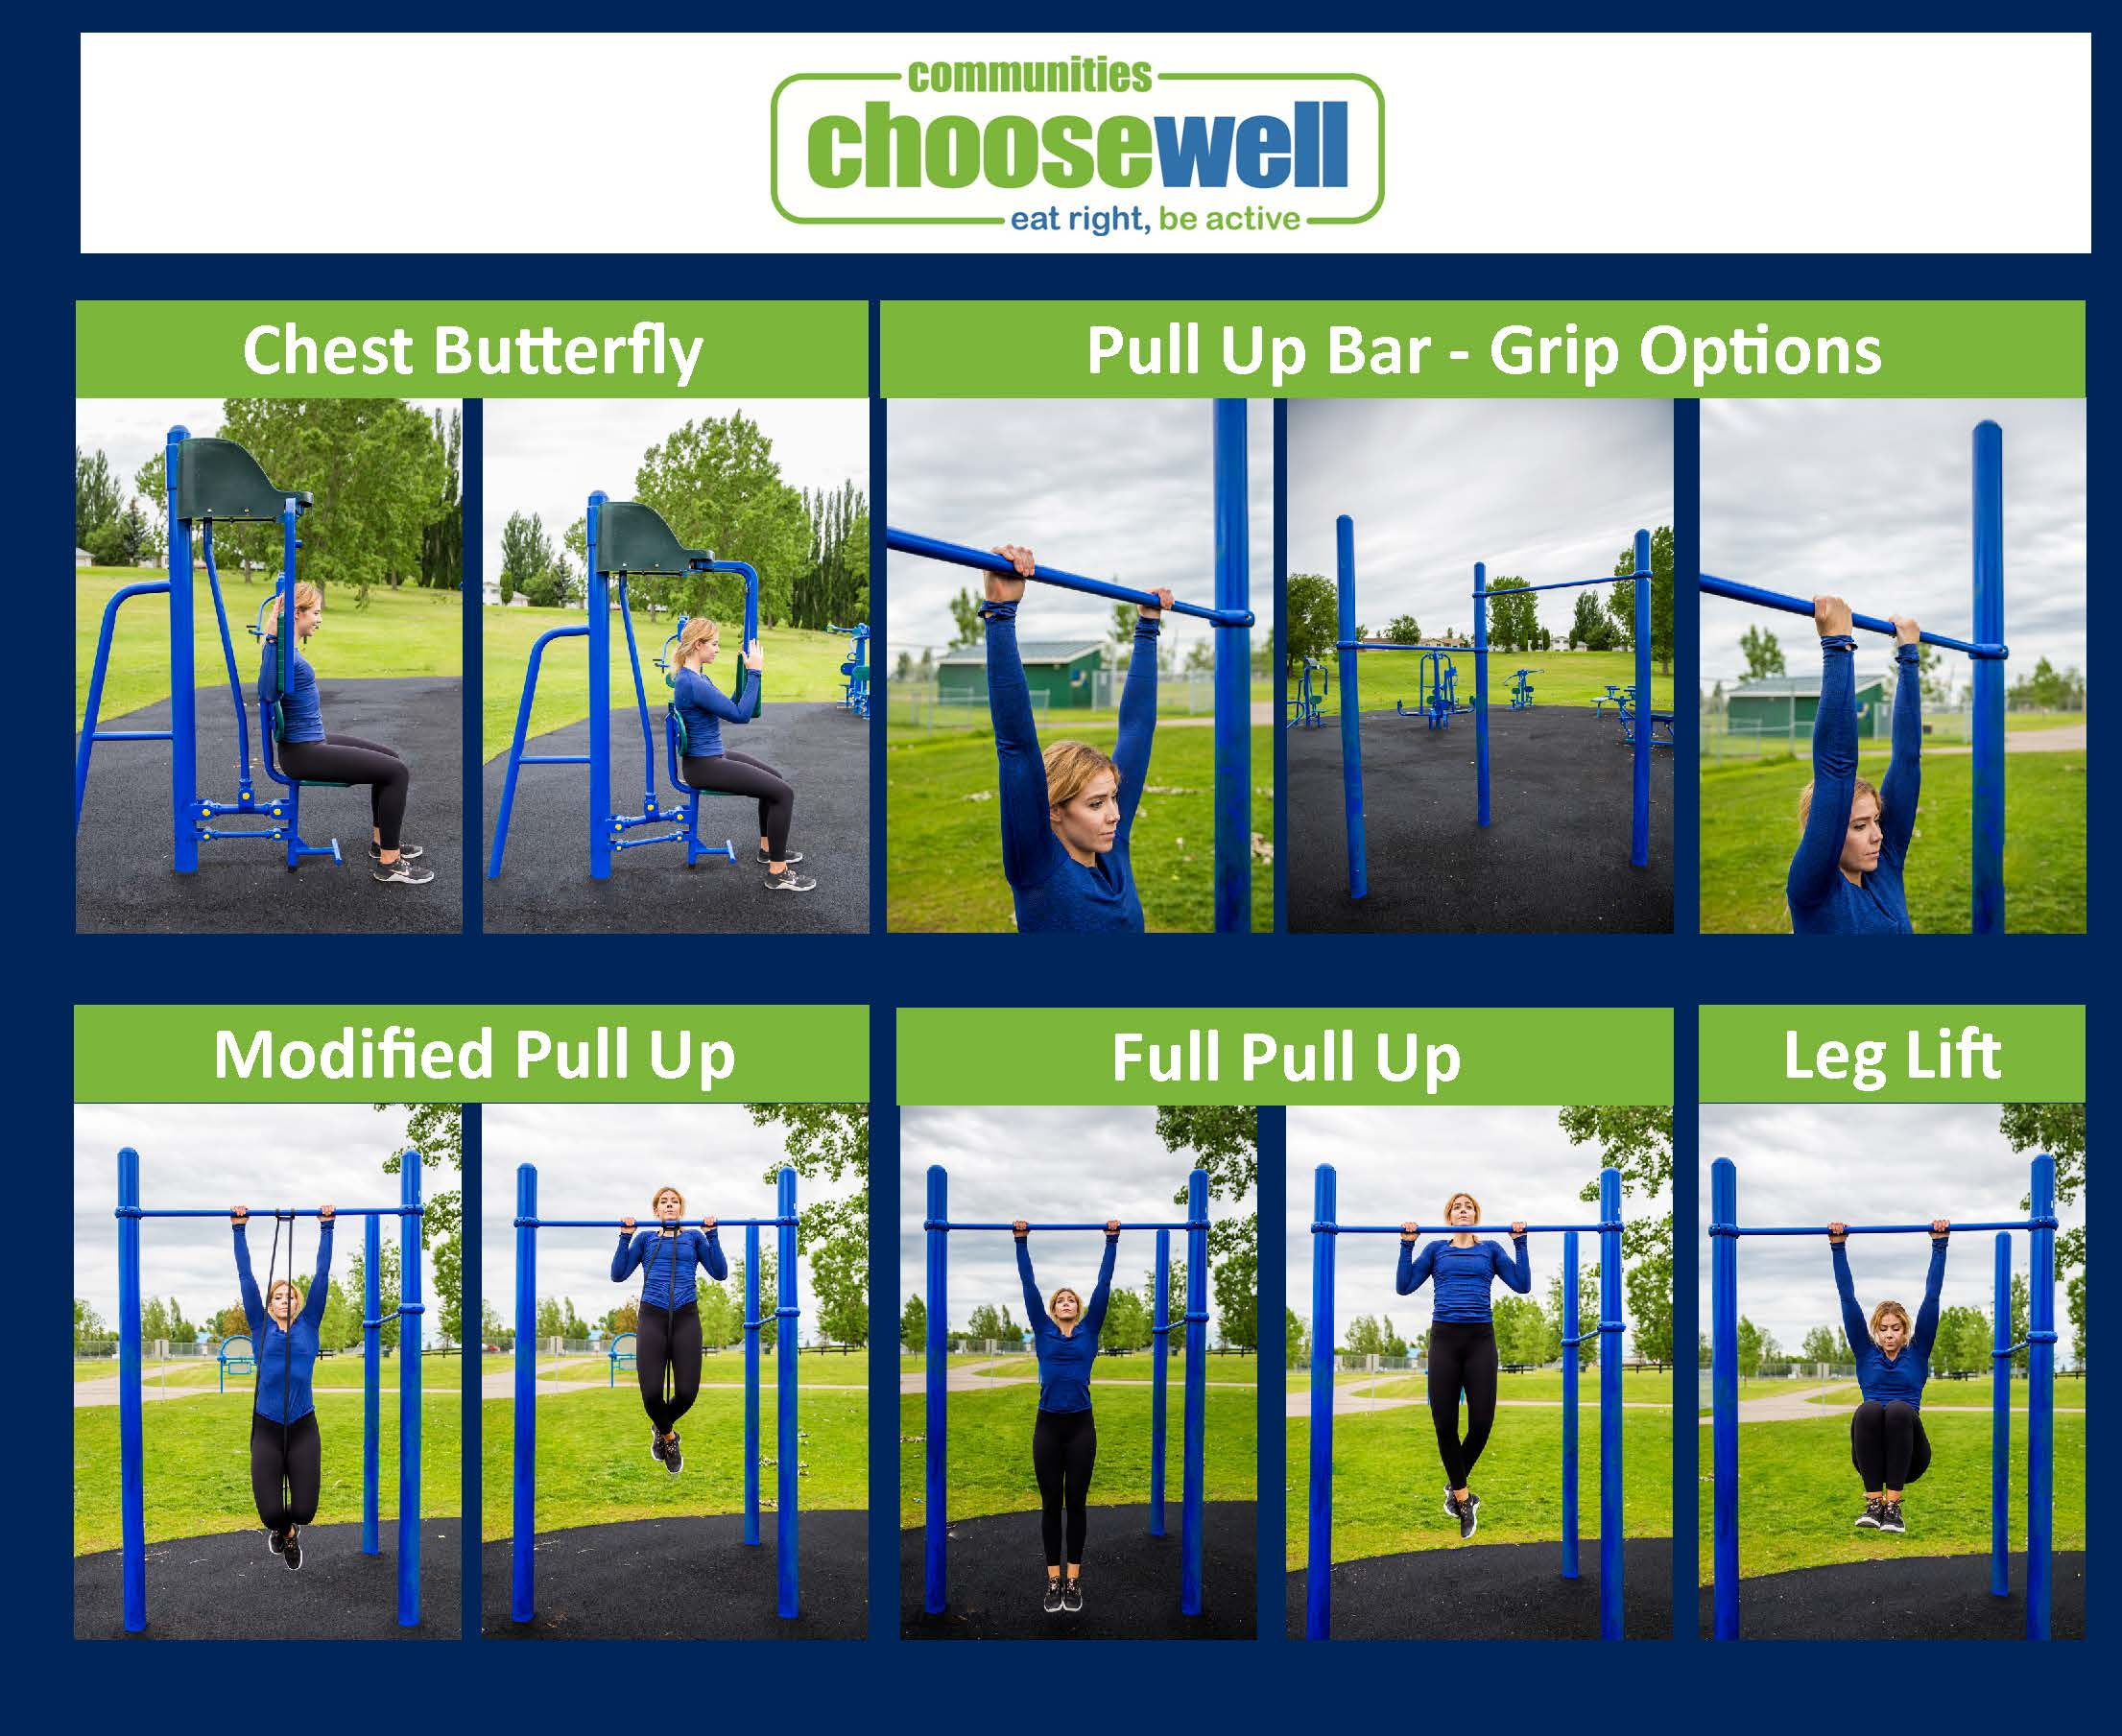 Collage of Chest Butterfly and Pull Up Bar with grip and use options